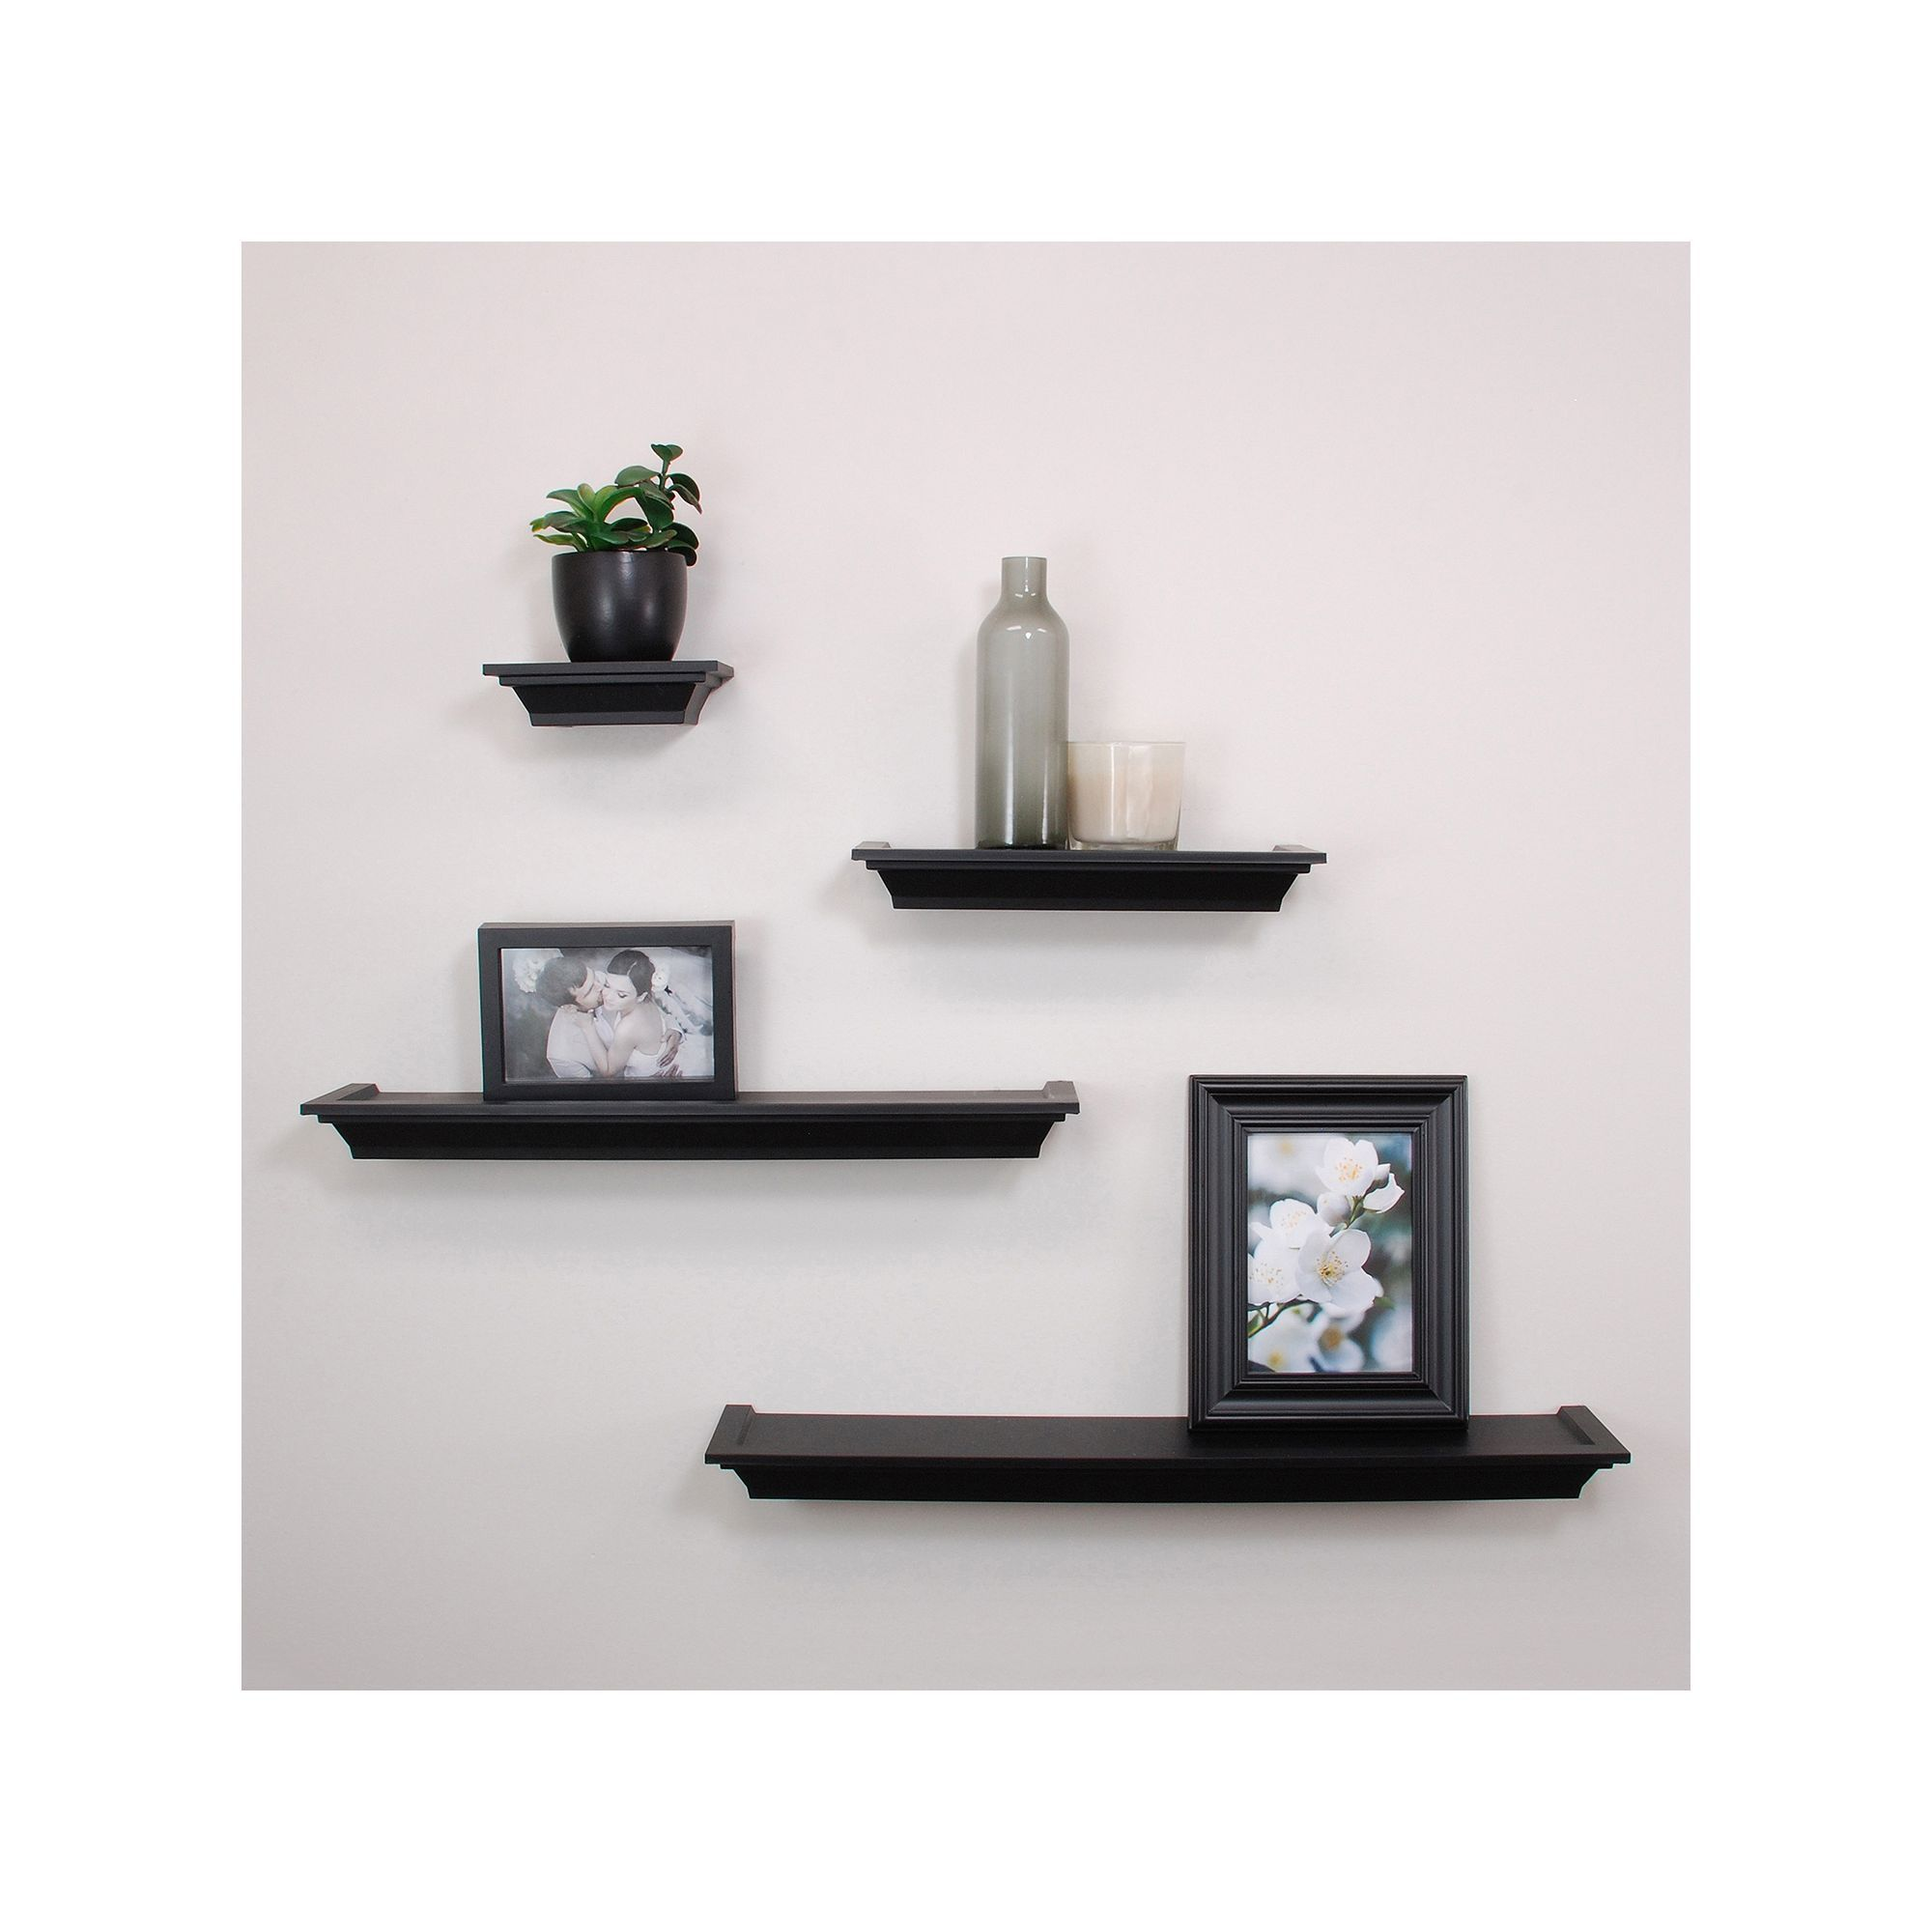 nexxt classic piece wall shelf set products floating black ikea besta unit white reclaimed wood kitchen rolling vinyl tile cutting underlay ideas for shelves bedroom box storage